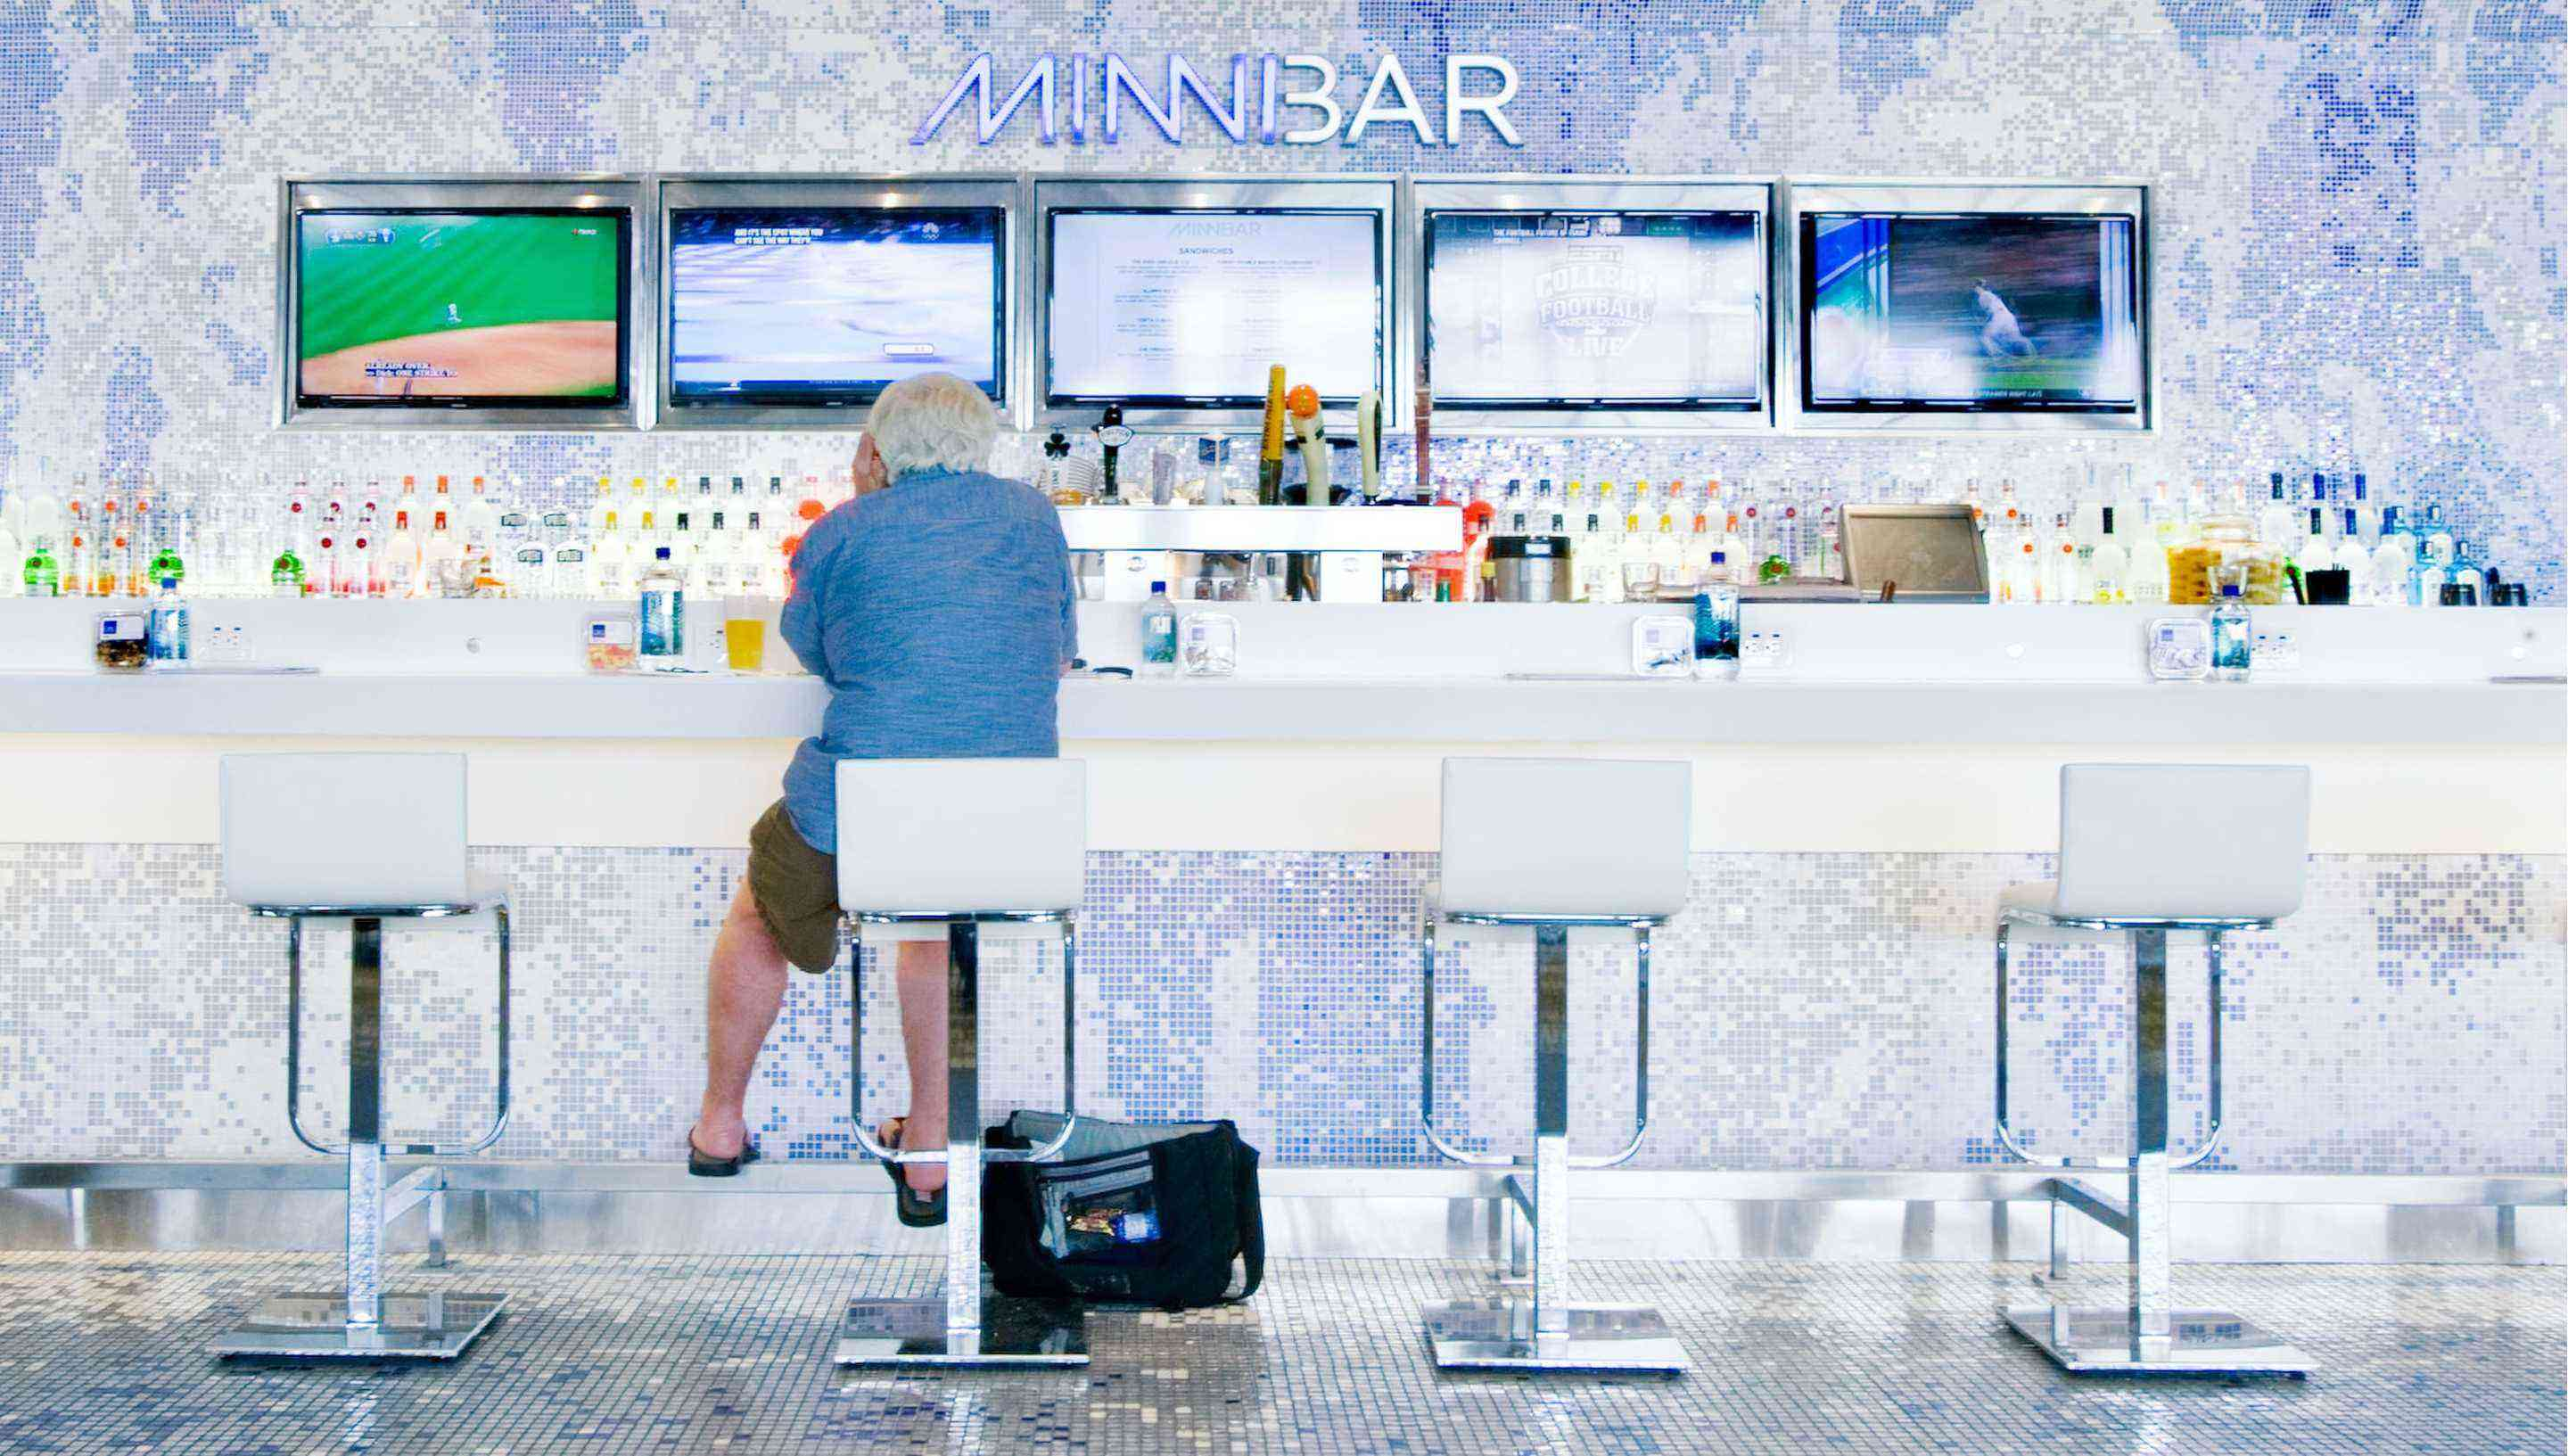 These Airport Restaurants Might Make You Forget You're Eating in an Airport